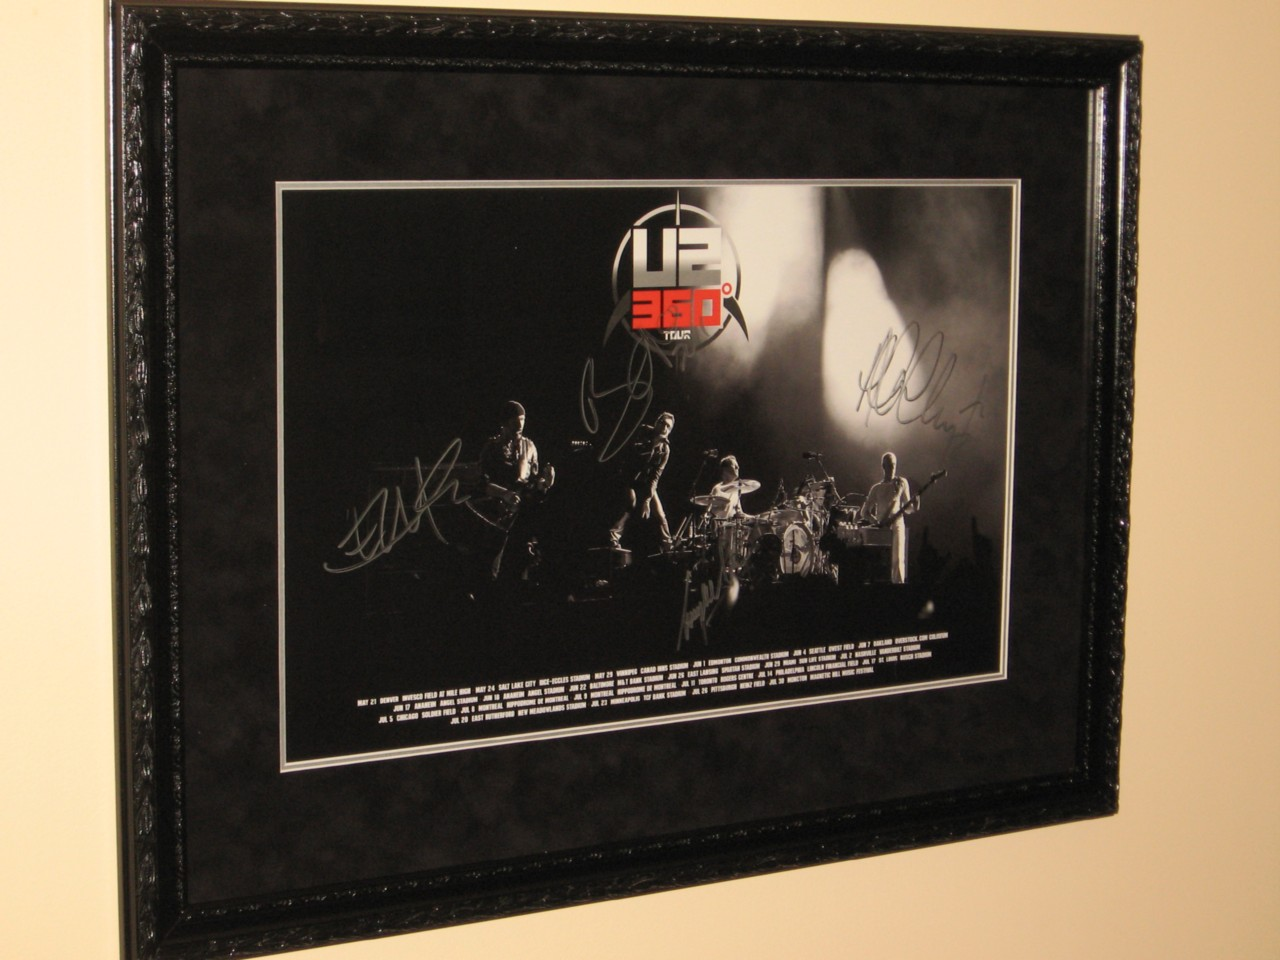 U2-FULLY-SIGNED-FRAMED-360-DEGREES-TOUR-POSTER-EXTREMELY-RARE